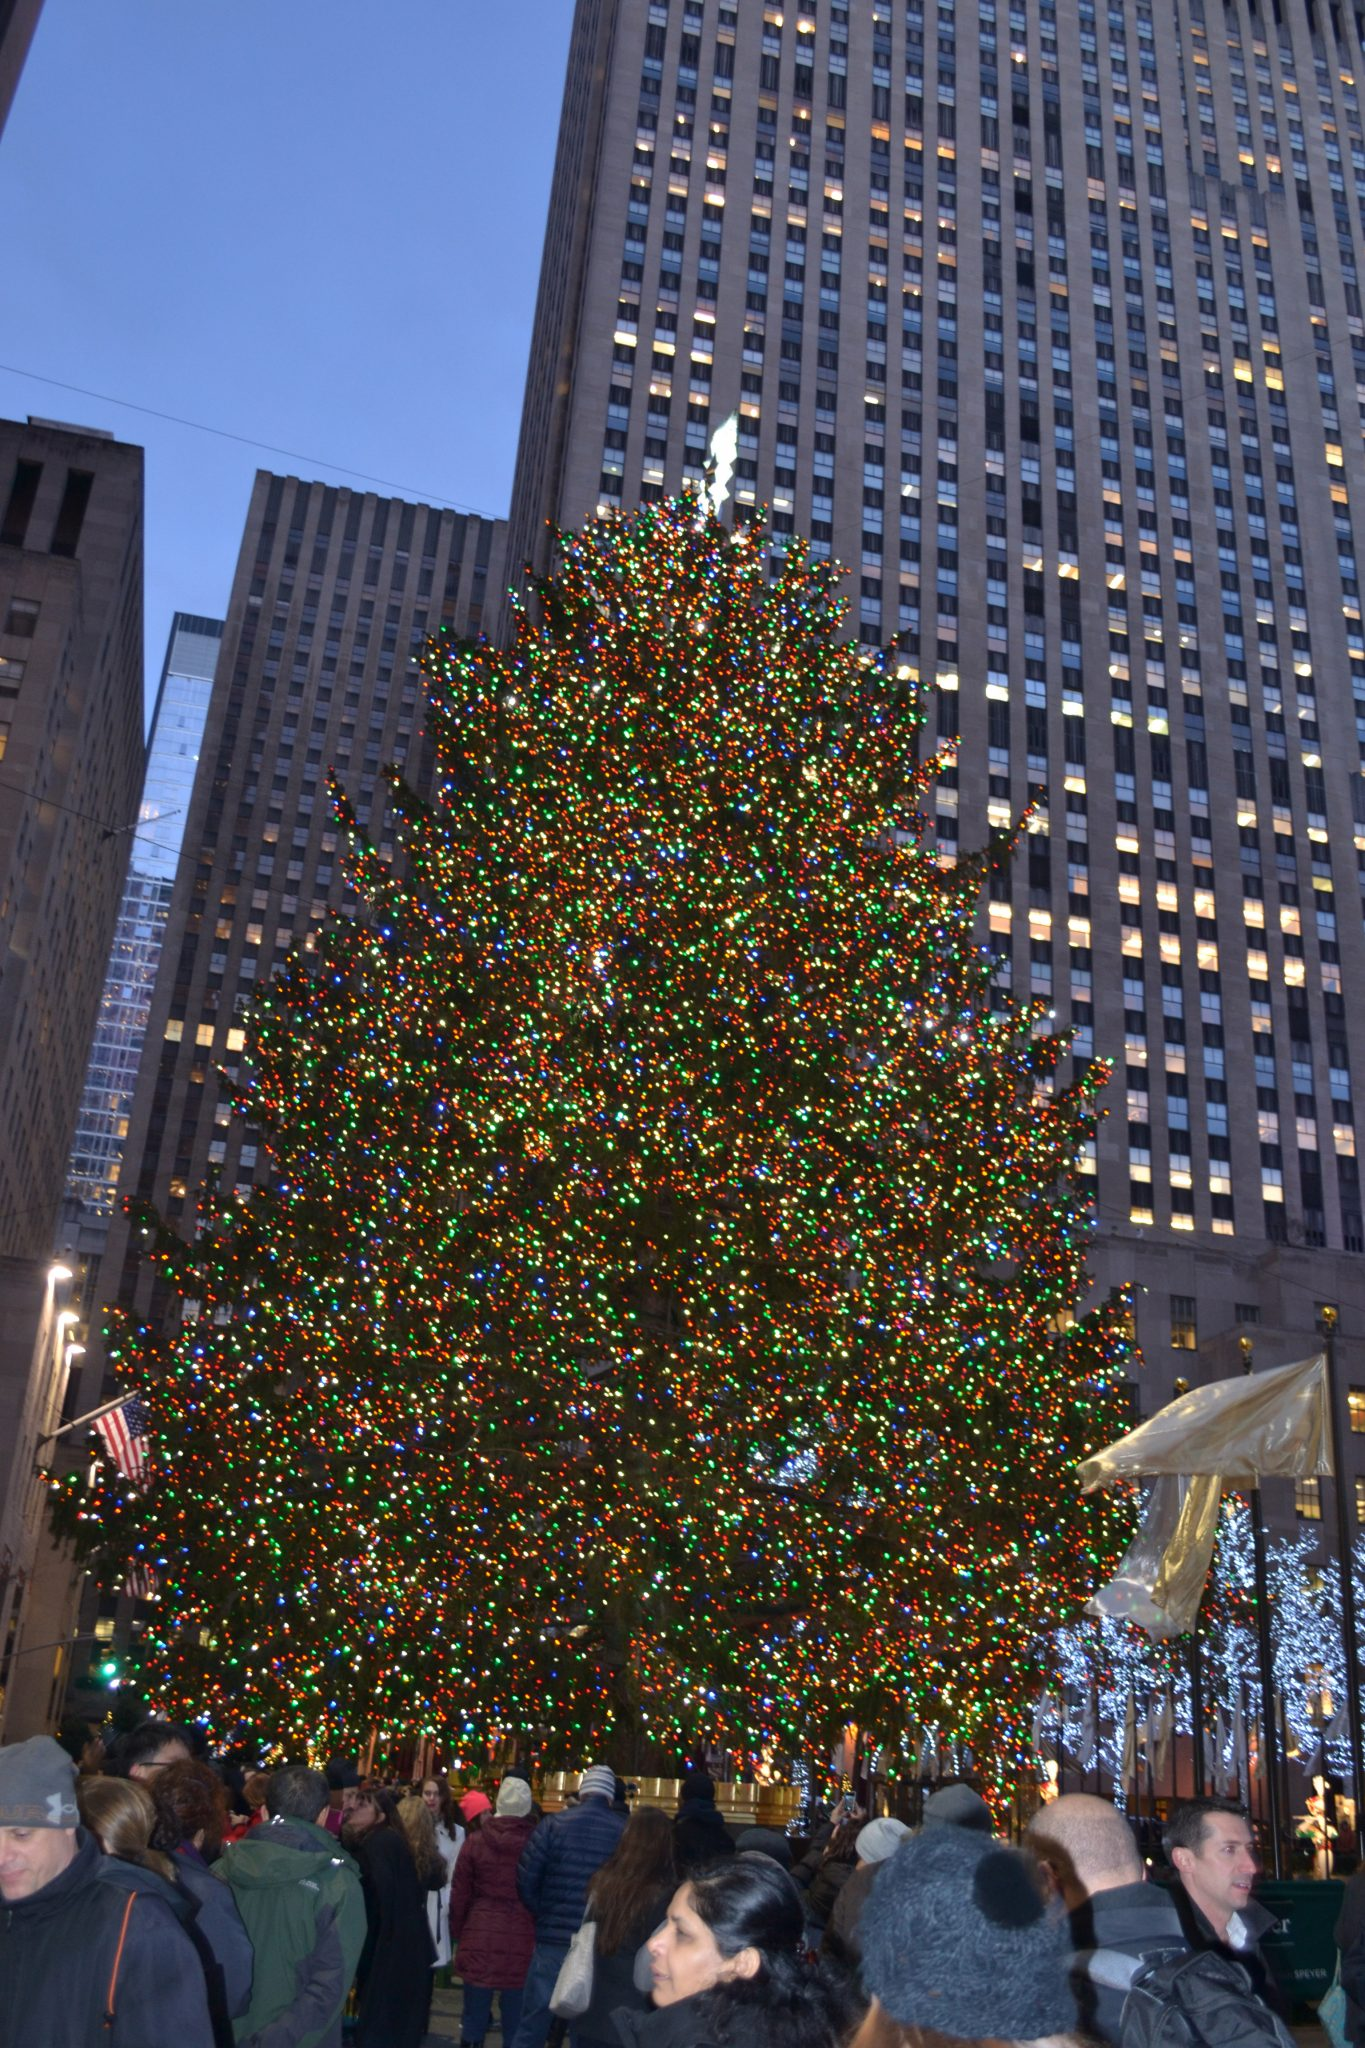 Eine Woche in New York: Rockefeller Center & Empire State Building - dsc 0207